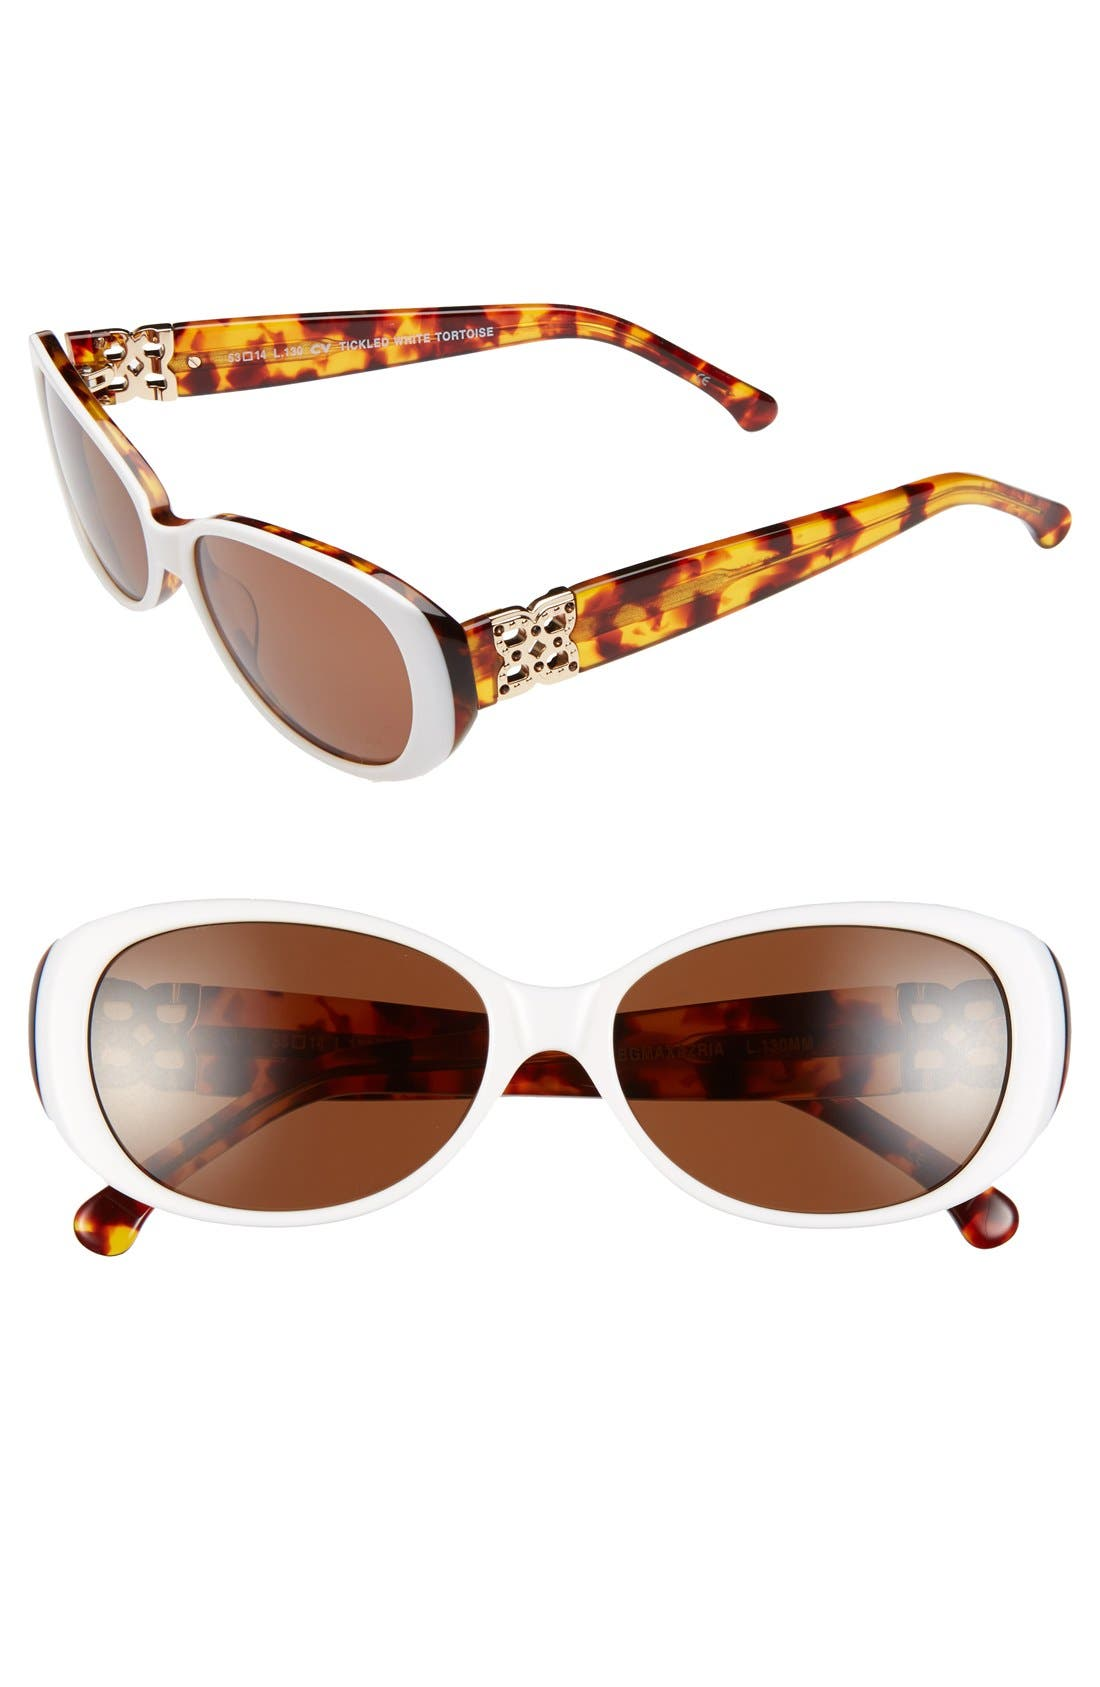 Alternate Image 1 Selected - BCBGMAXAZRIA 'Tickled' 53mm Sunglasses